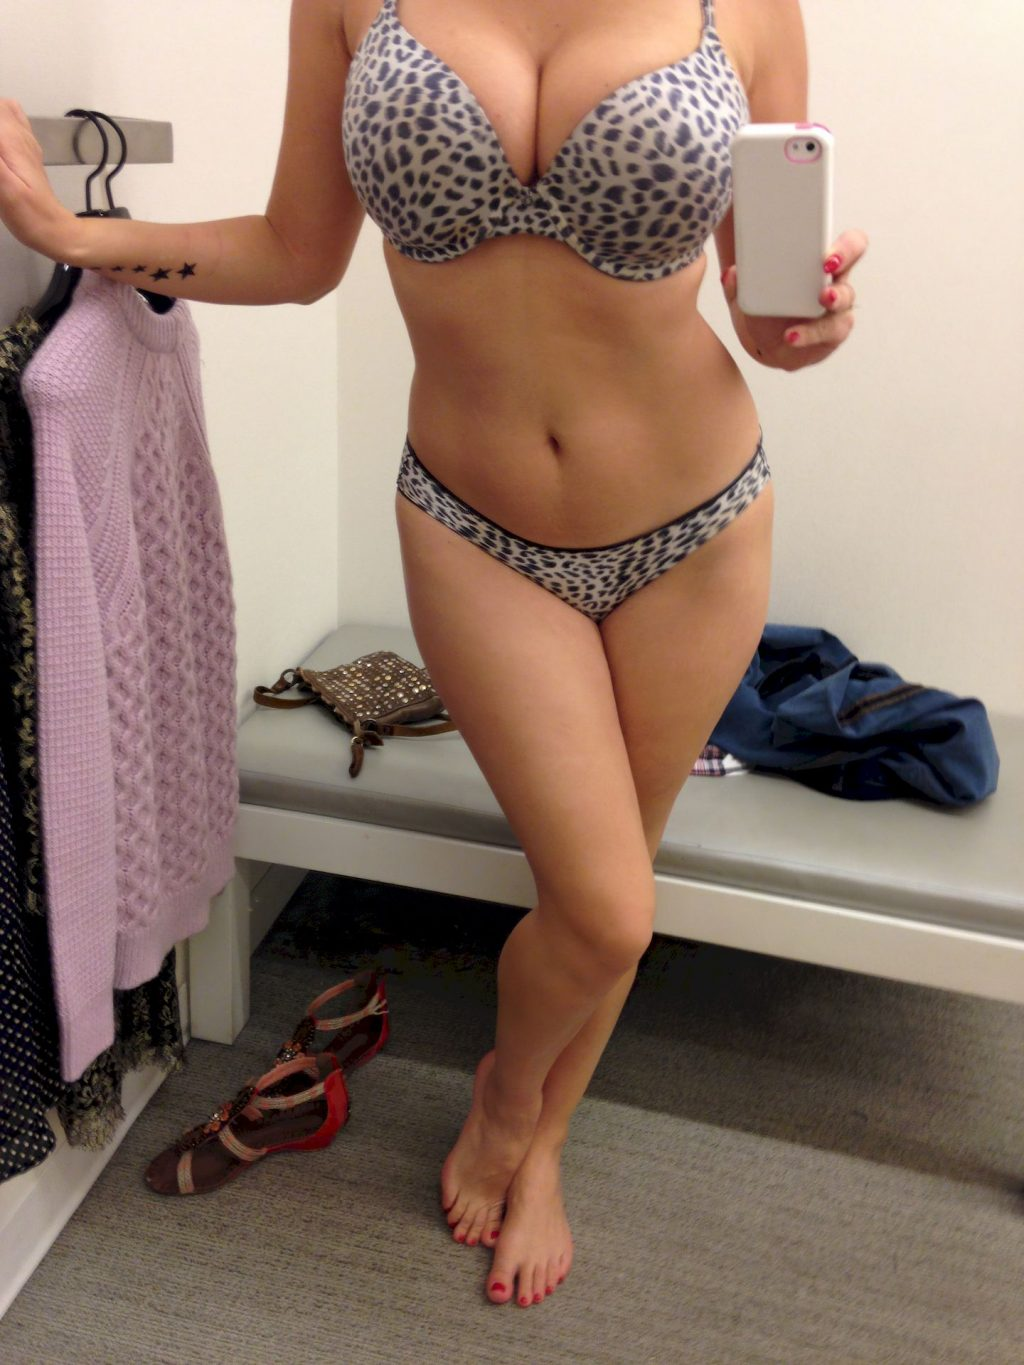 Kelly Brook Leaked The Fappening (2 Photos)